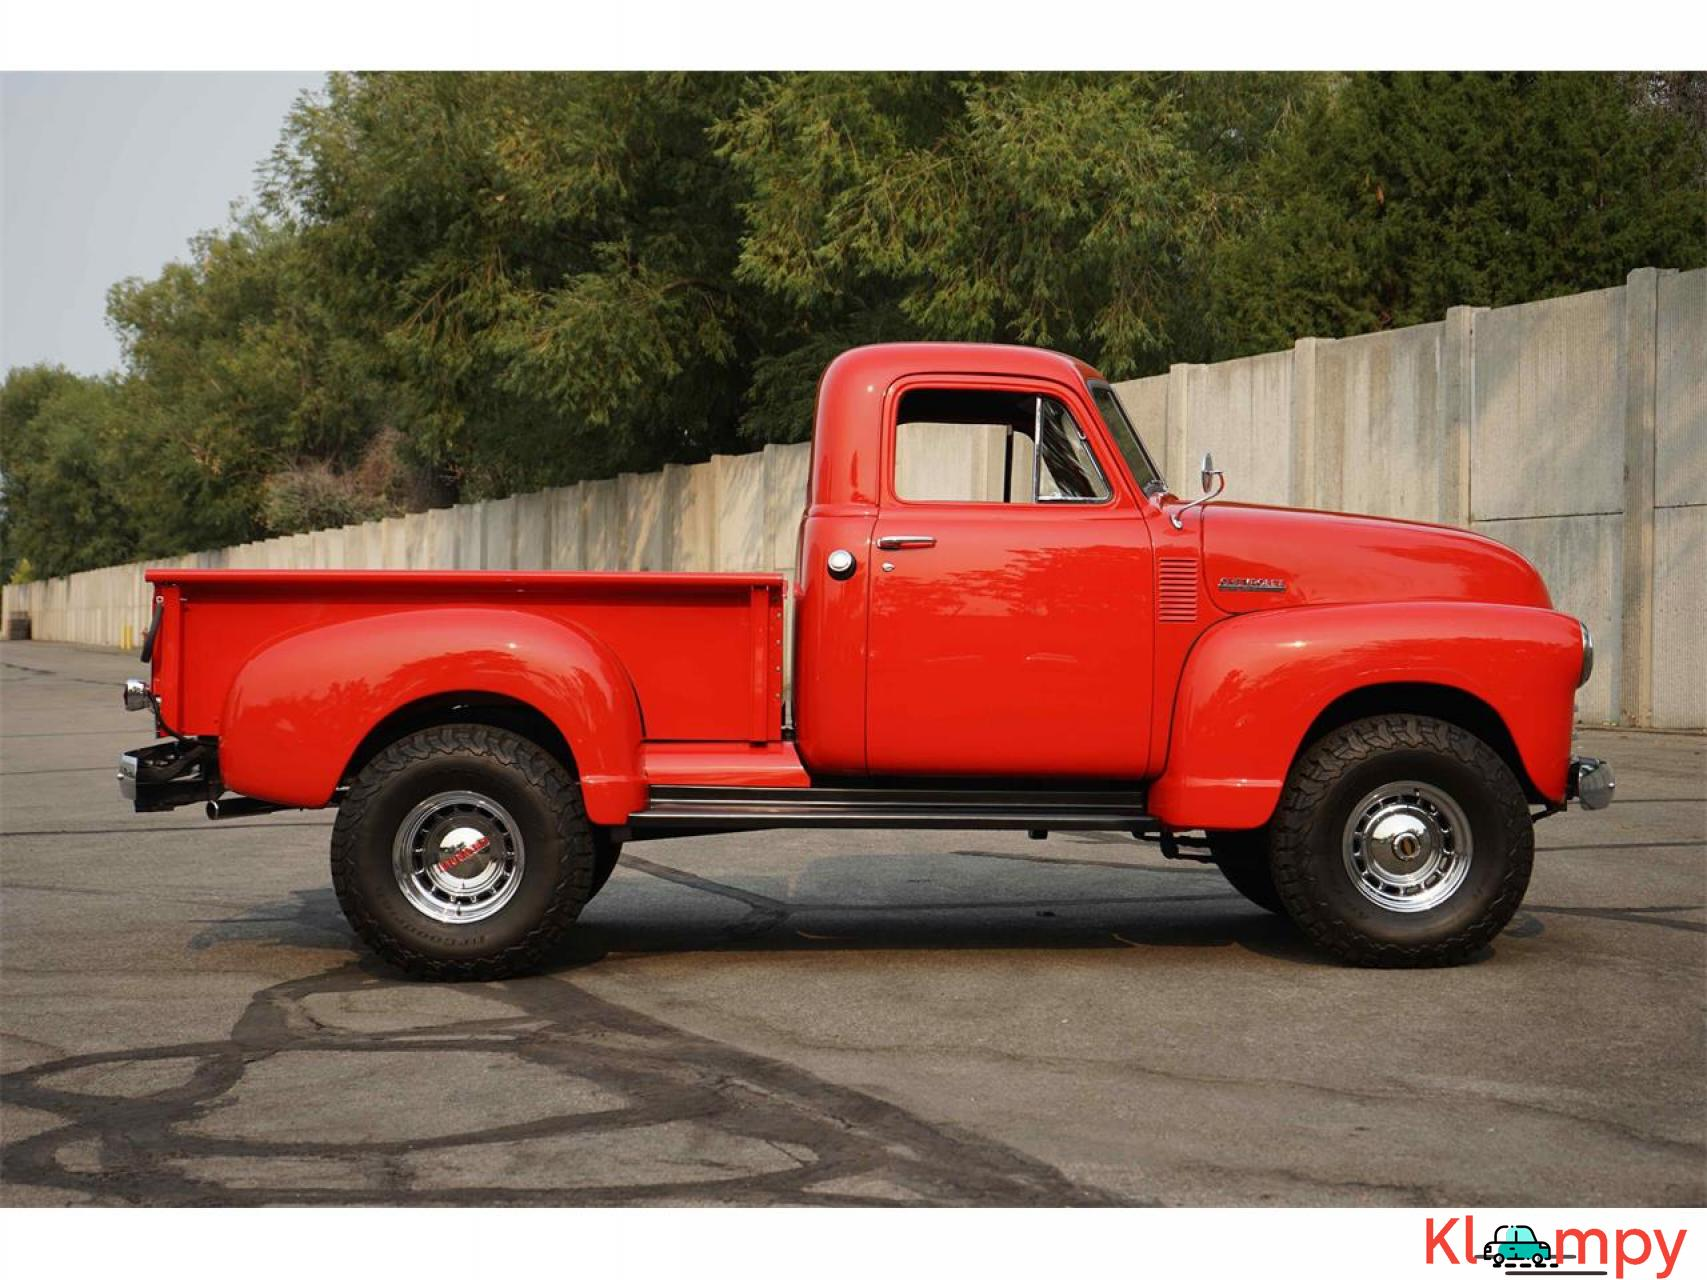 1951 Chevrolet 3100 350 V8 with a B&M Supercharger - 7/17